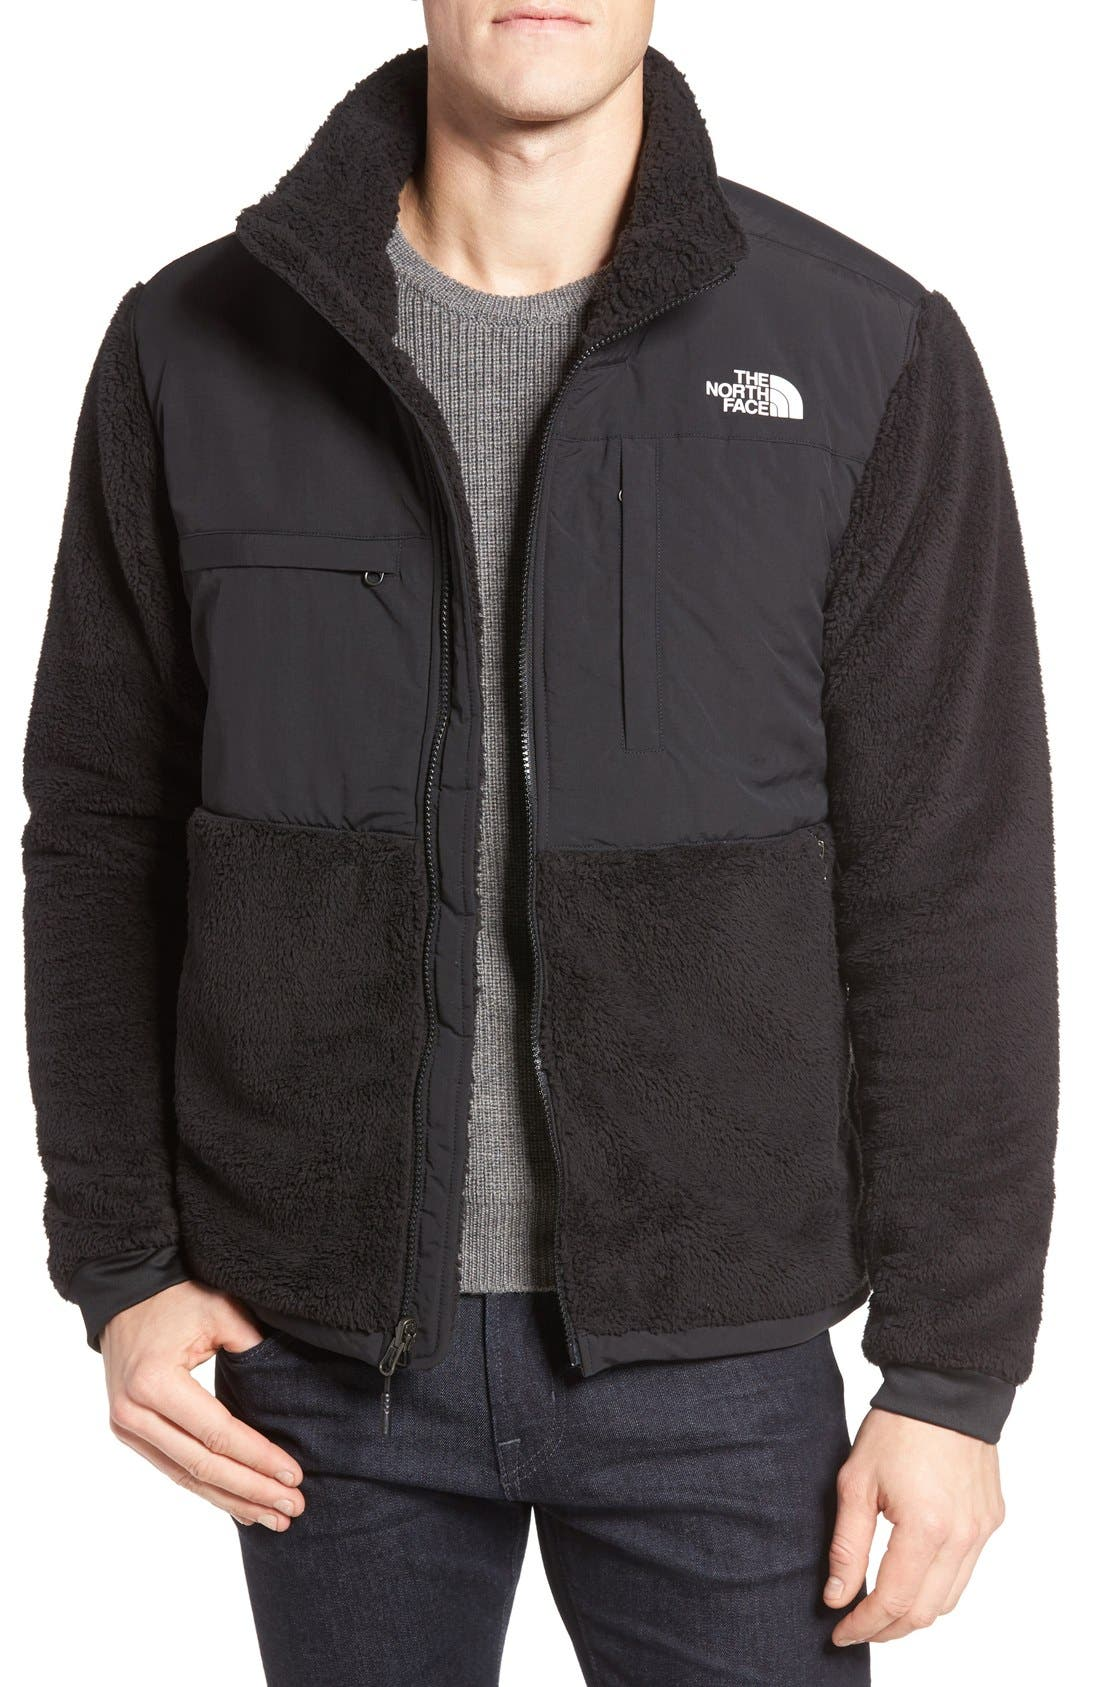 Novelty Denali Jacket,                             Main thumbnail 1, color,                             Tnf Black Sherpa/ Tnf Black